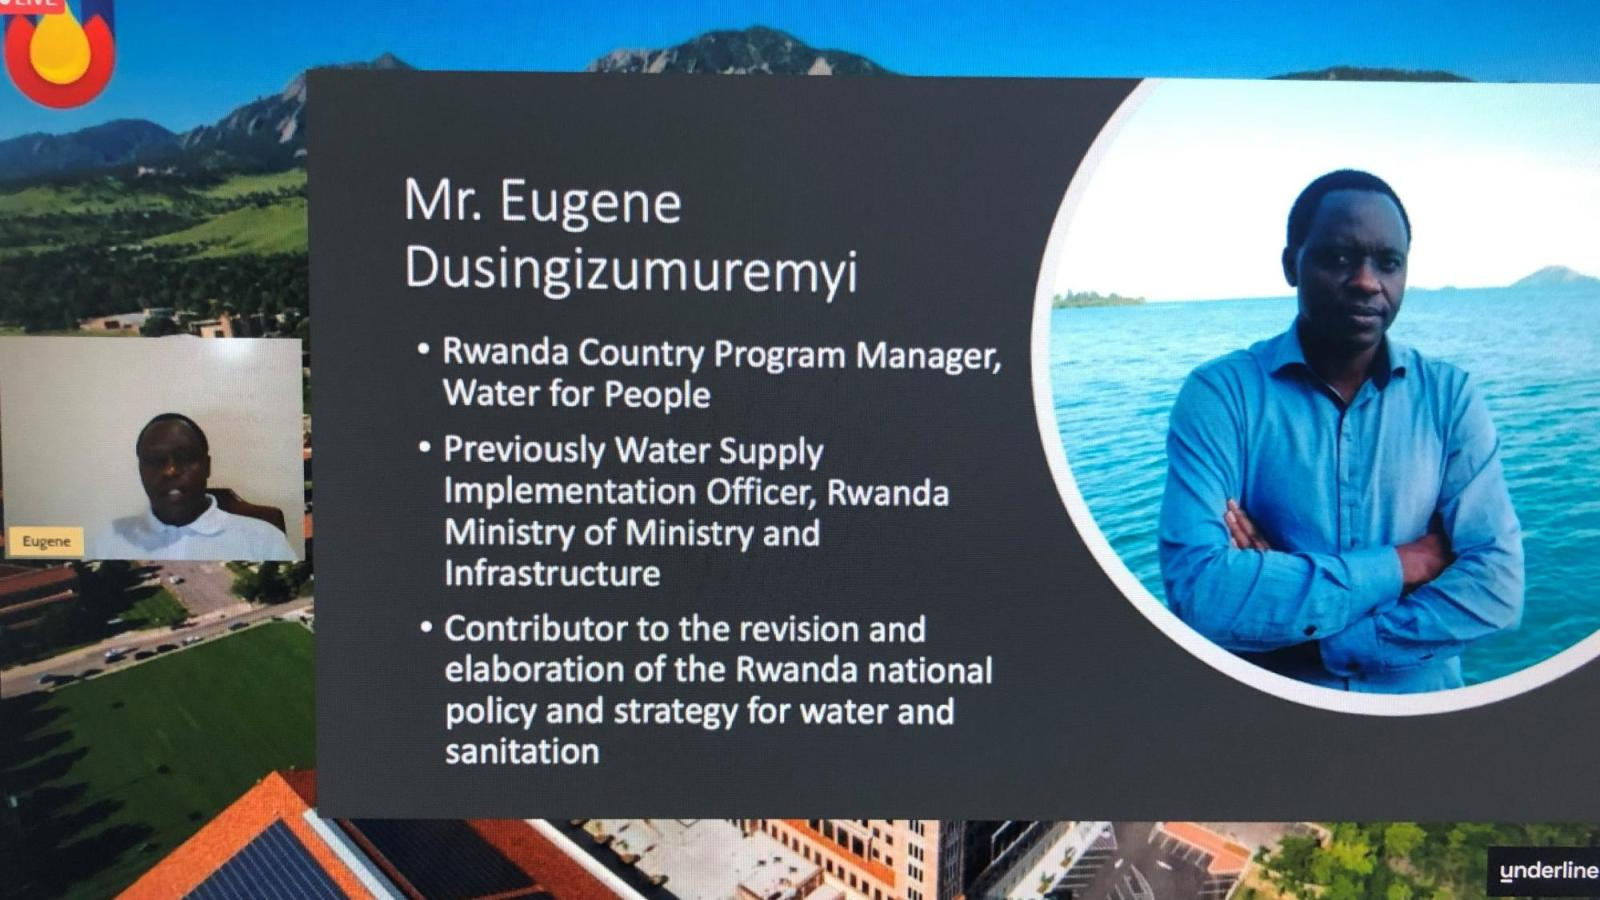 Eugene's Slide from the award presentation showing him and text